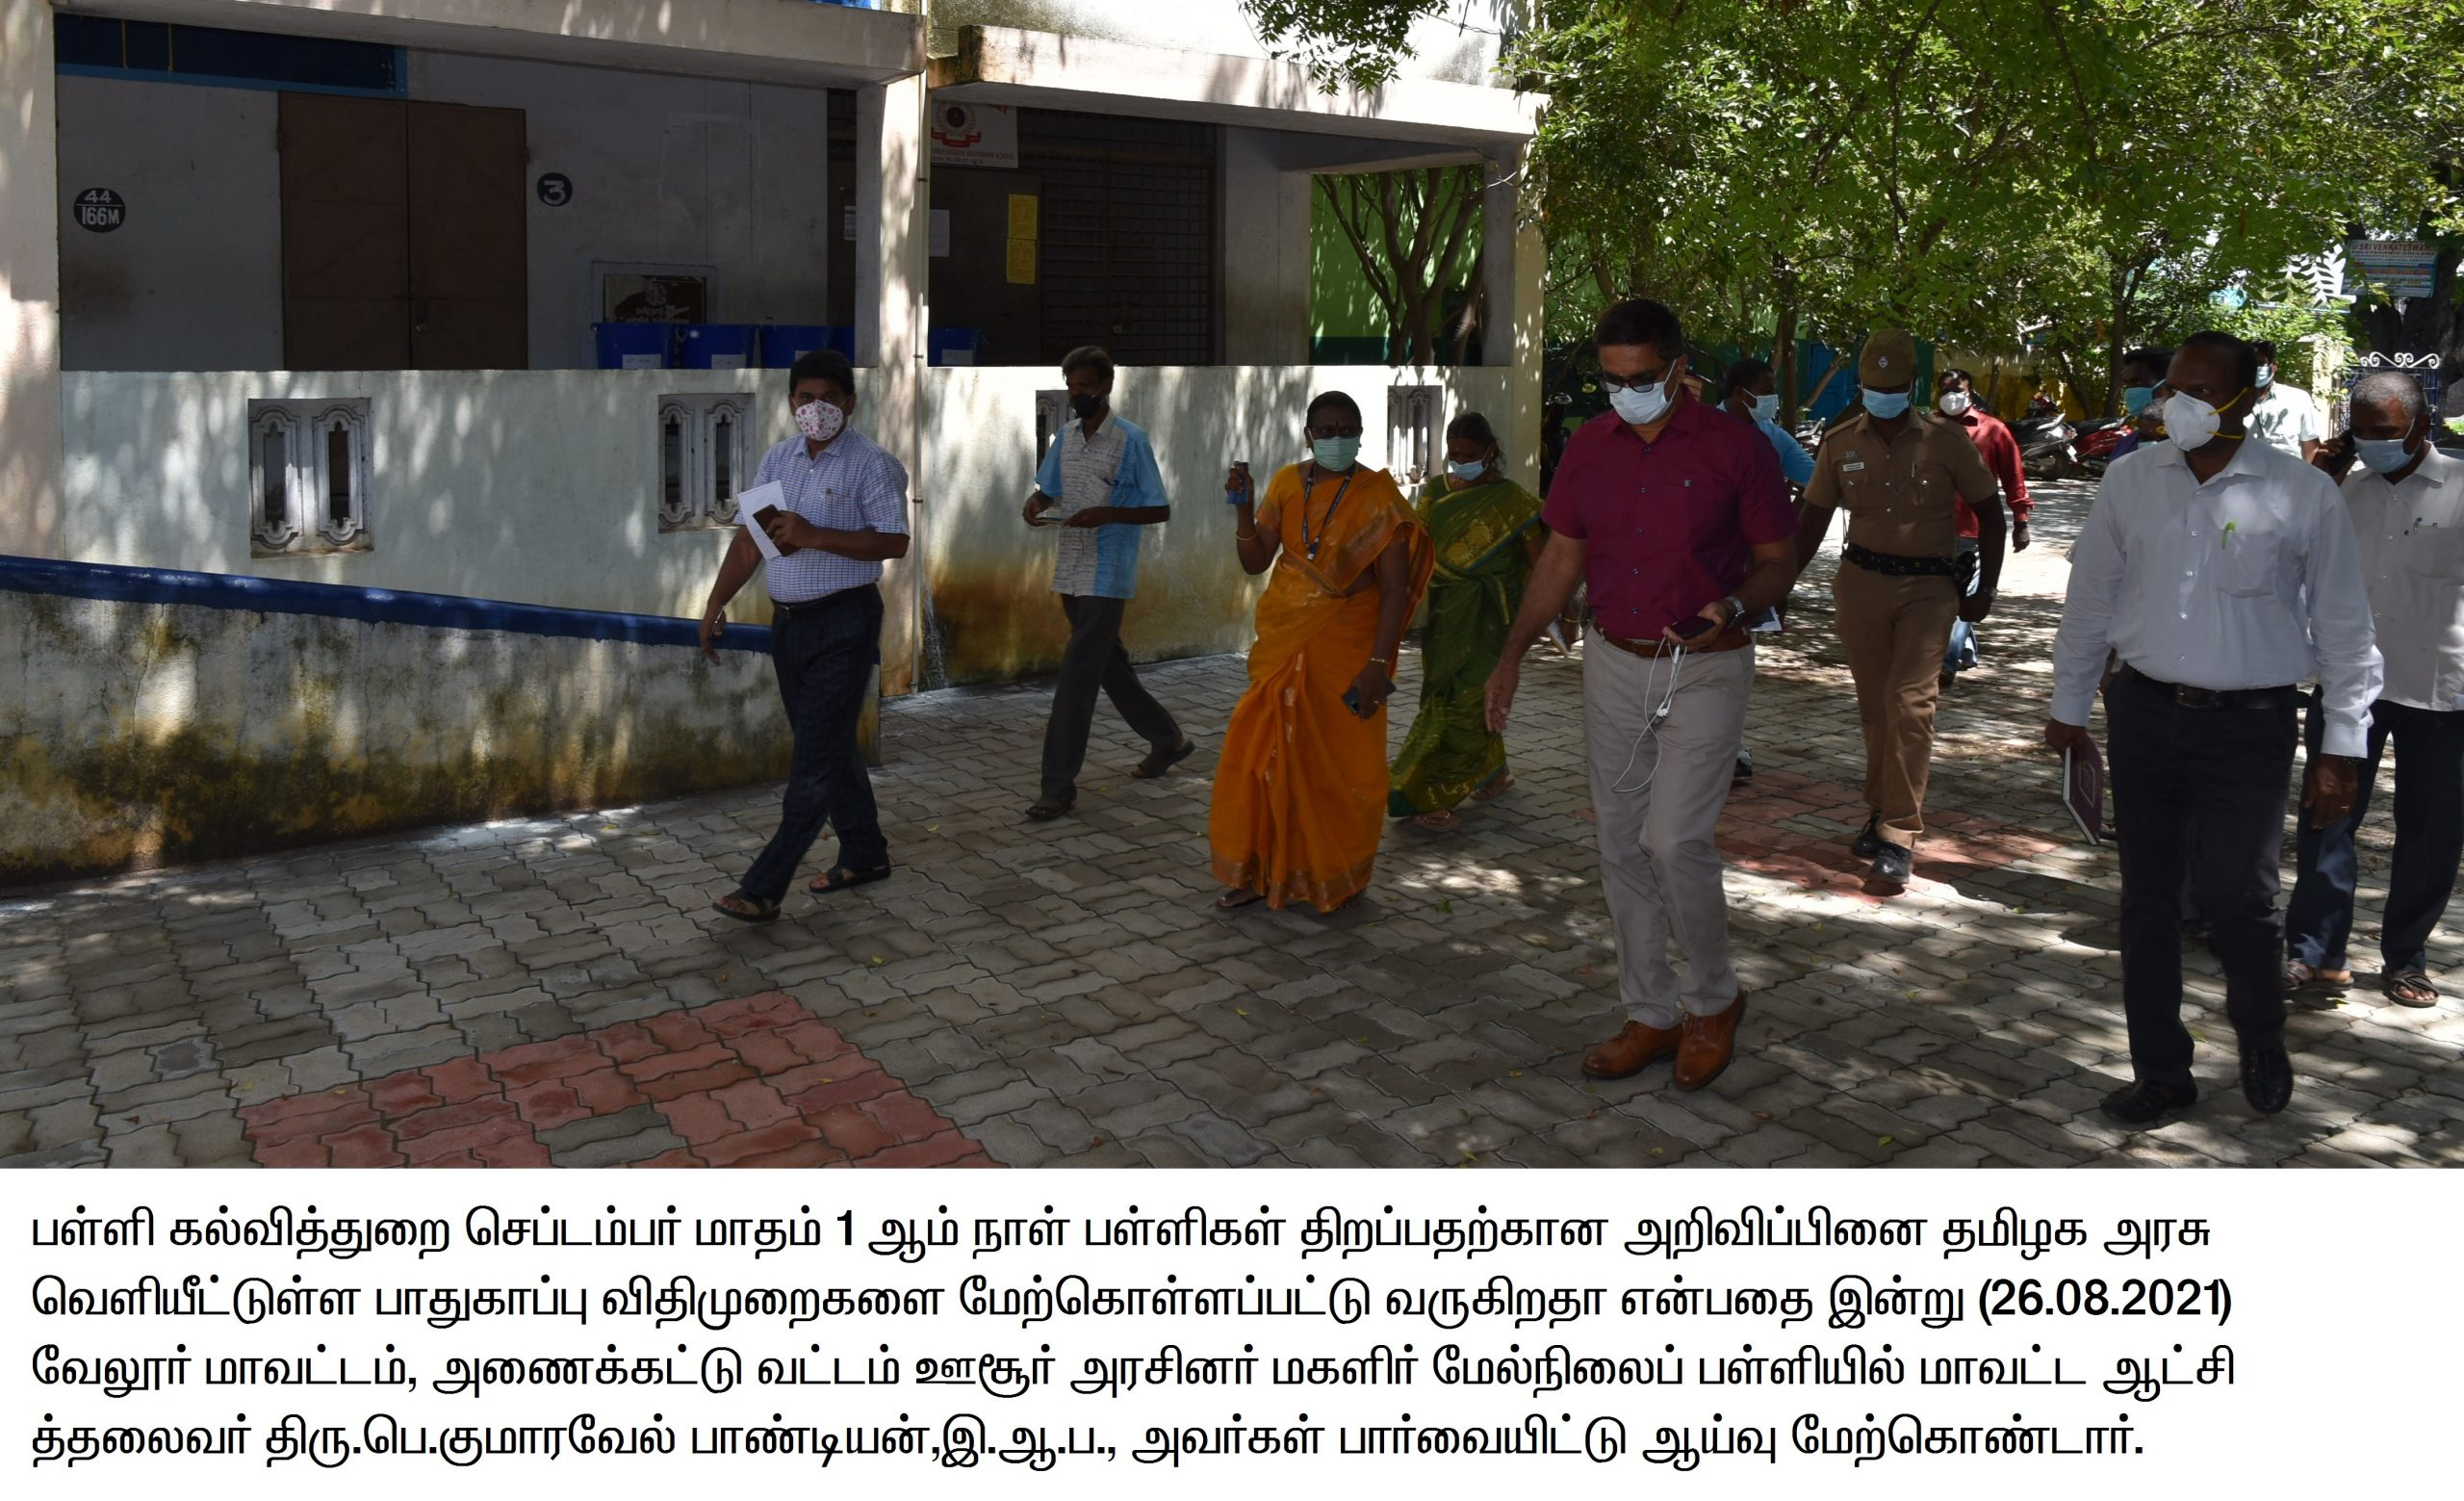 District Collector Inspection 26/08/2021